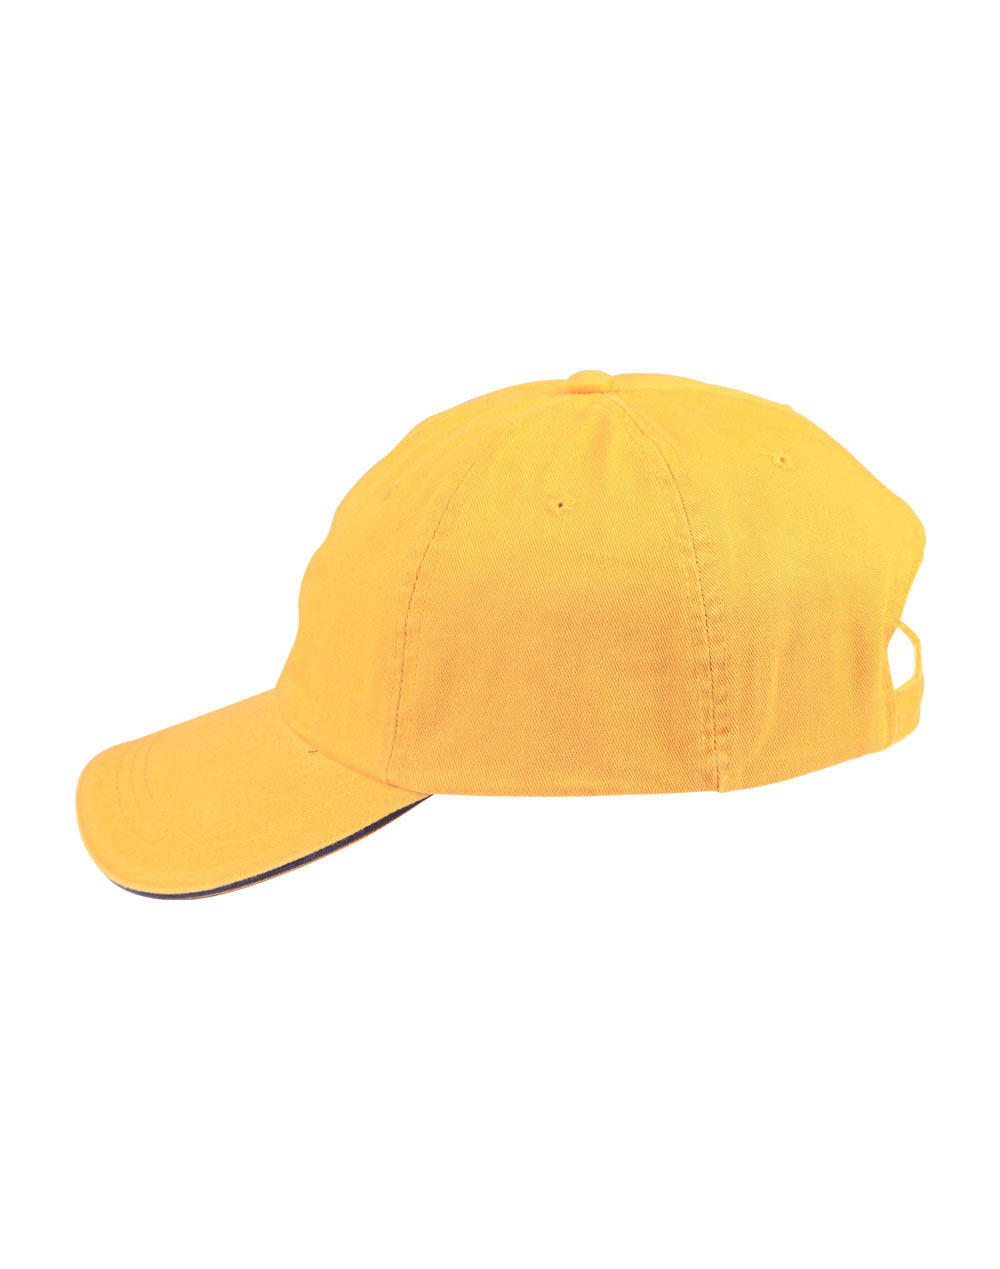 https://s3-ap-southeast-1.amazonaws.com/ws-imgs/CAPS/CH40_Yellow.Navy_SIde.jpg